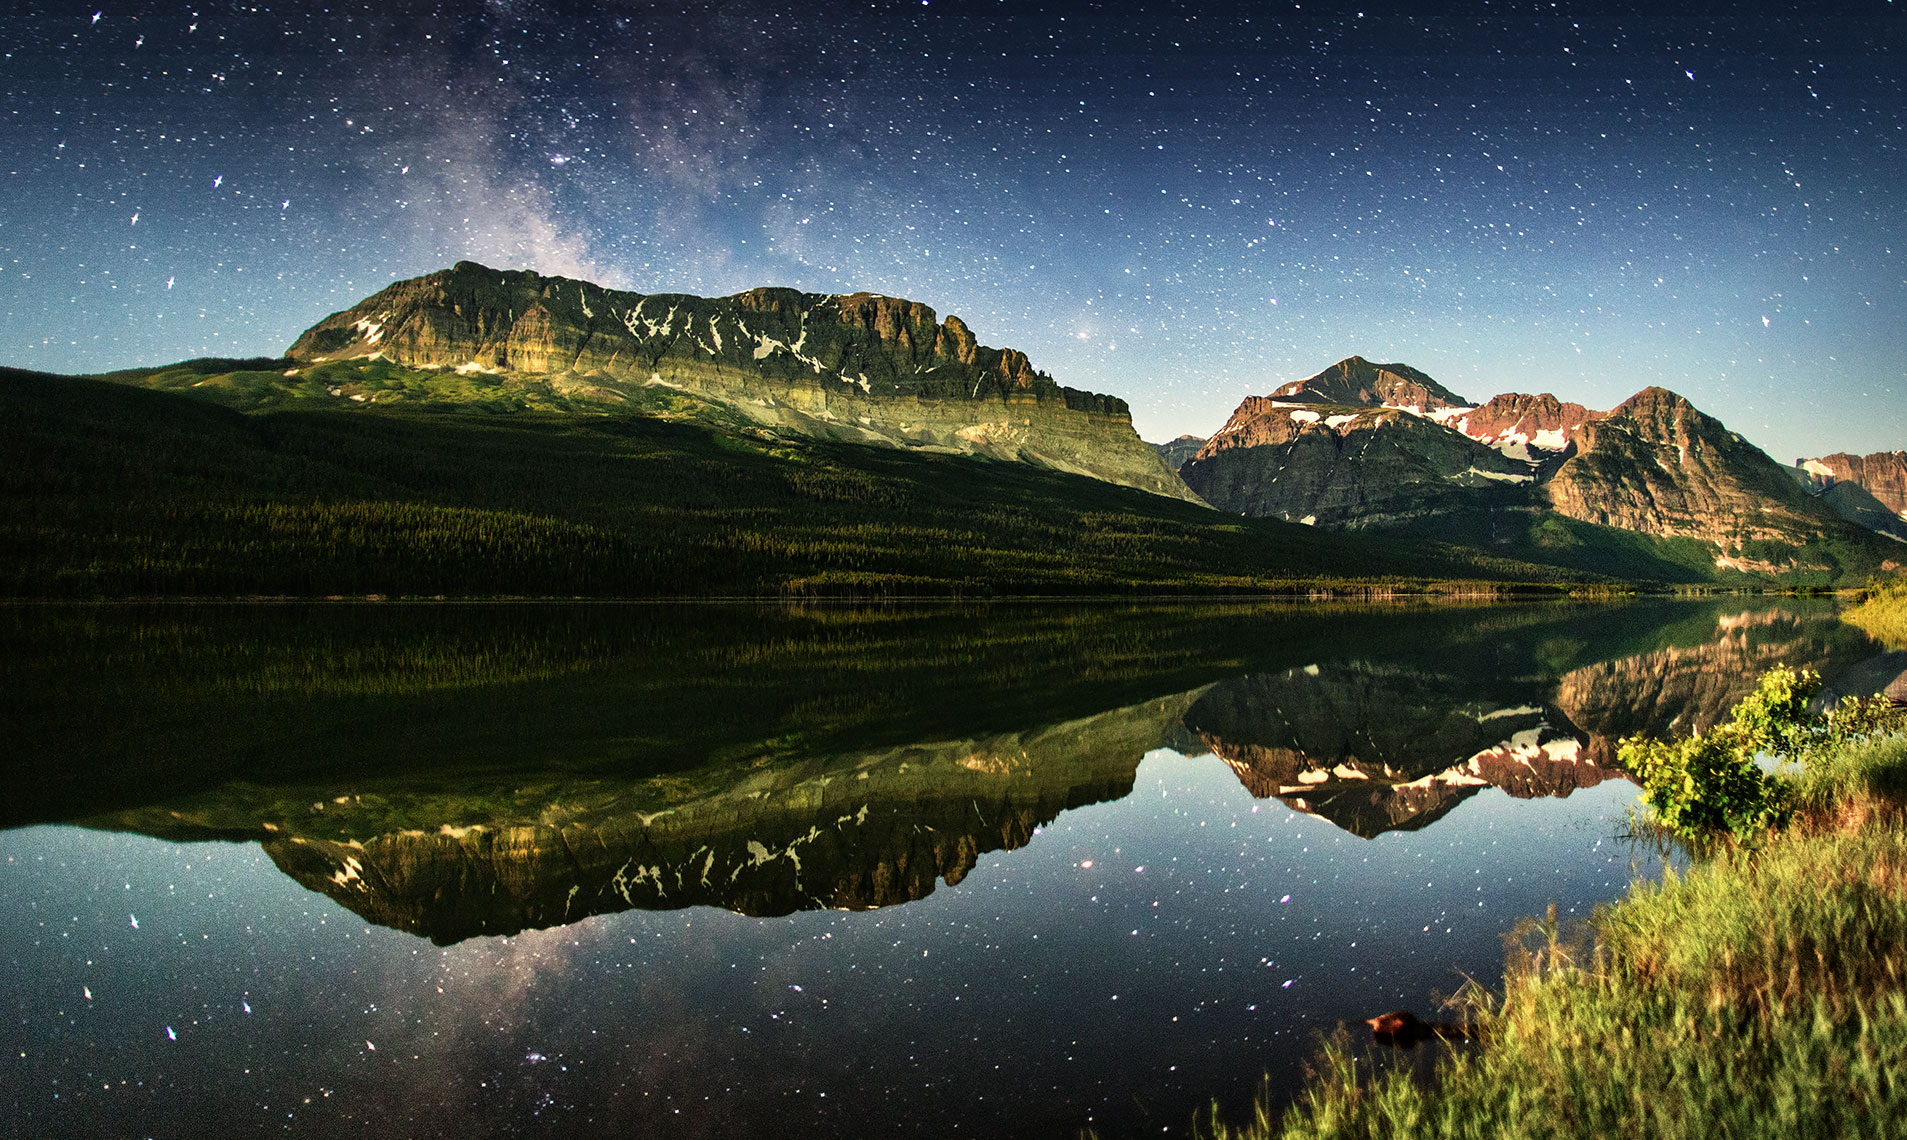 glacier_milky_way_reflection